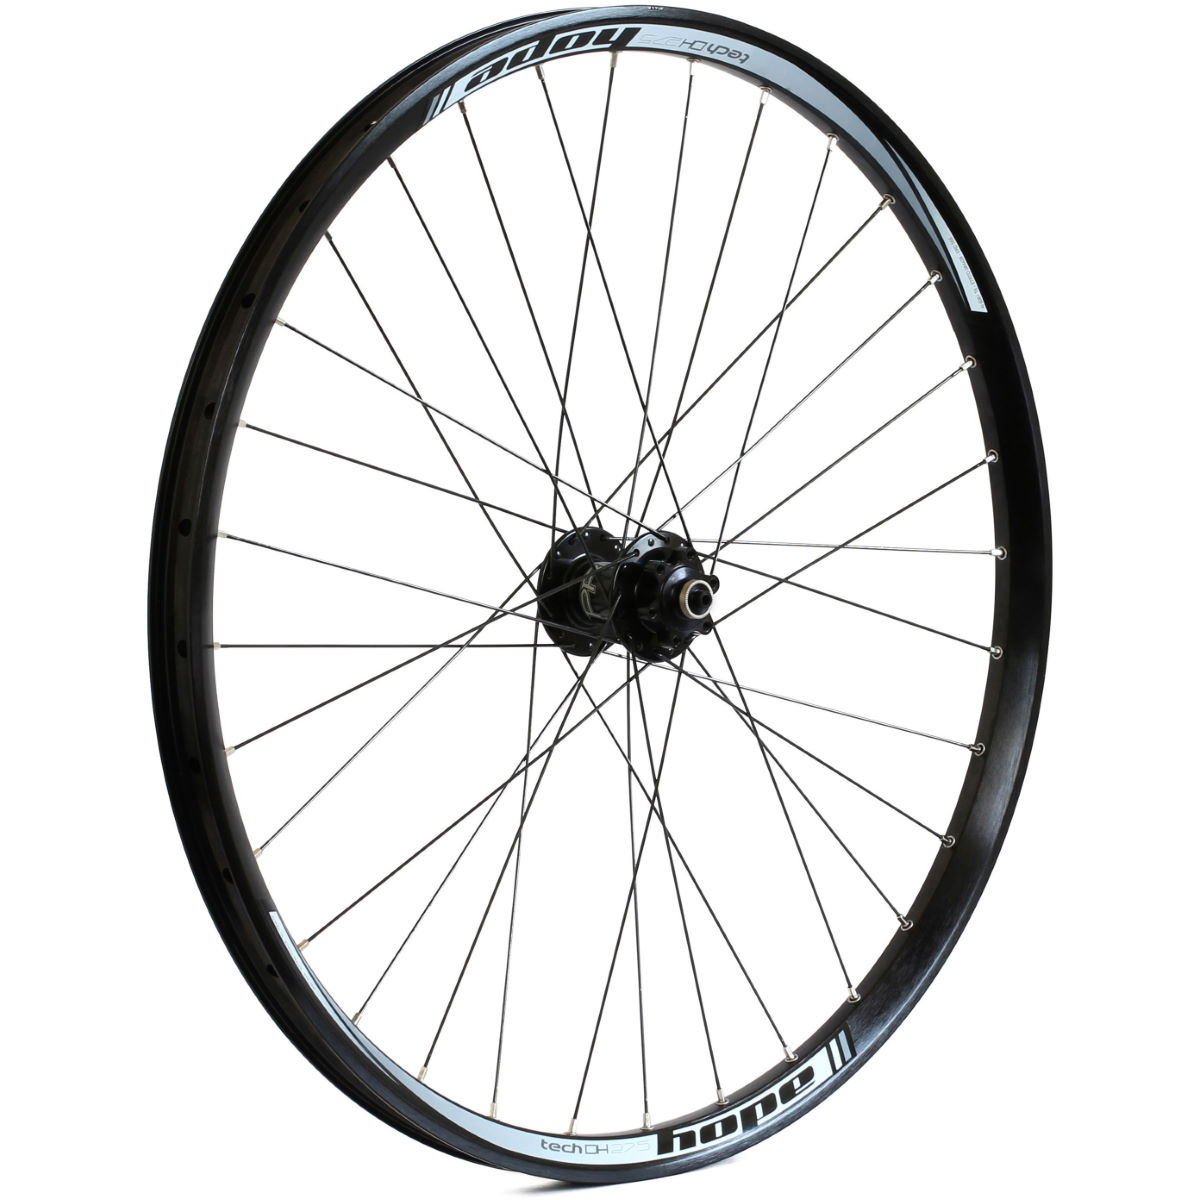 Hope Tech DH - Pro 4 MTB Front Wheel - Ruedas de competición